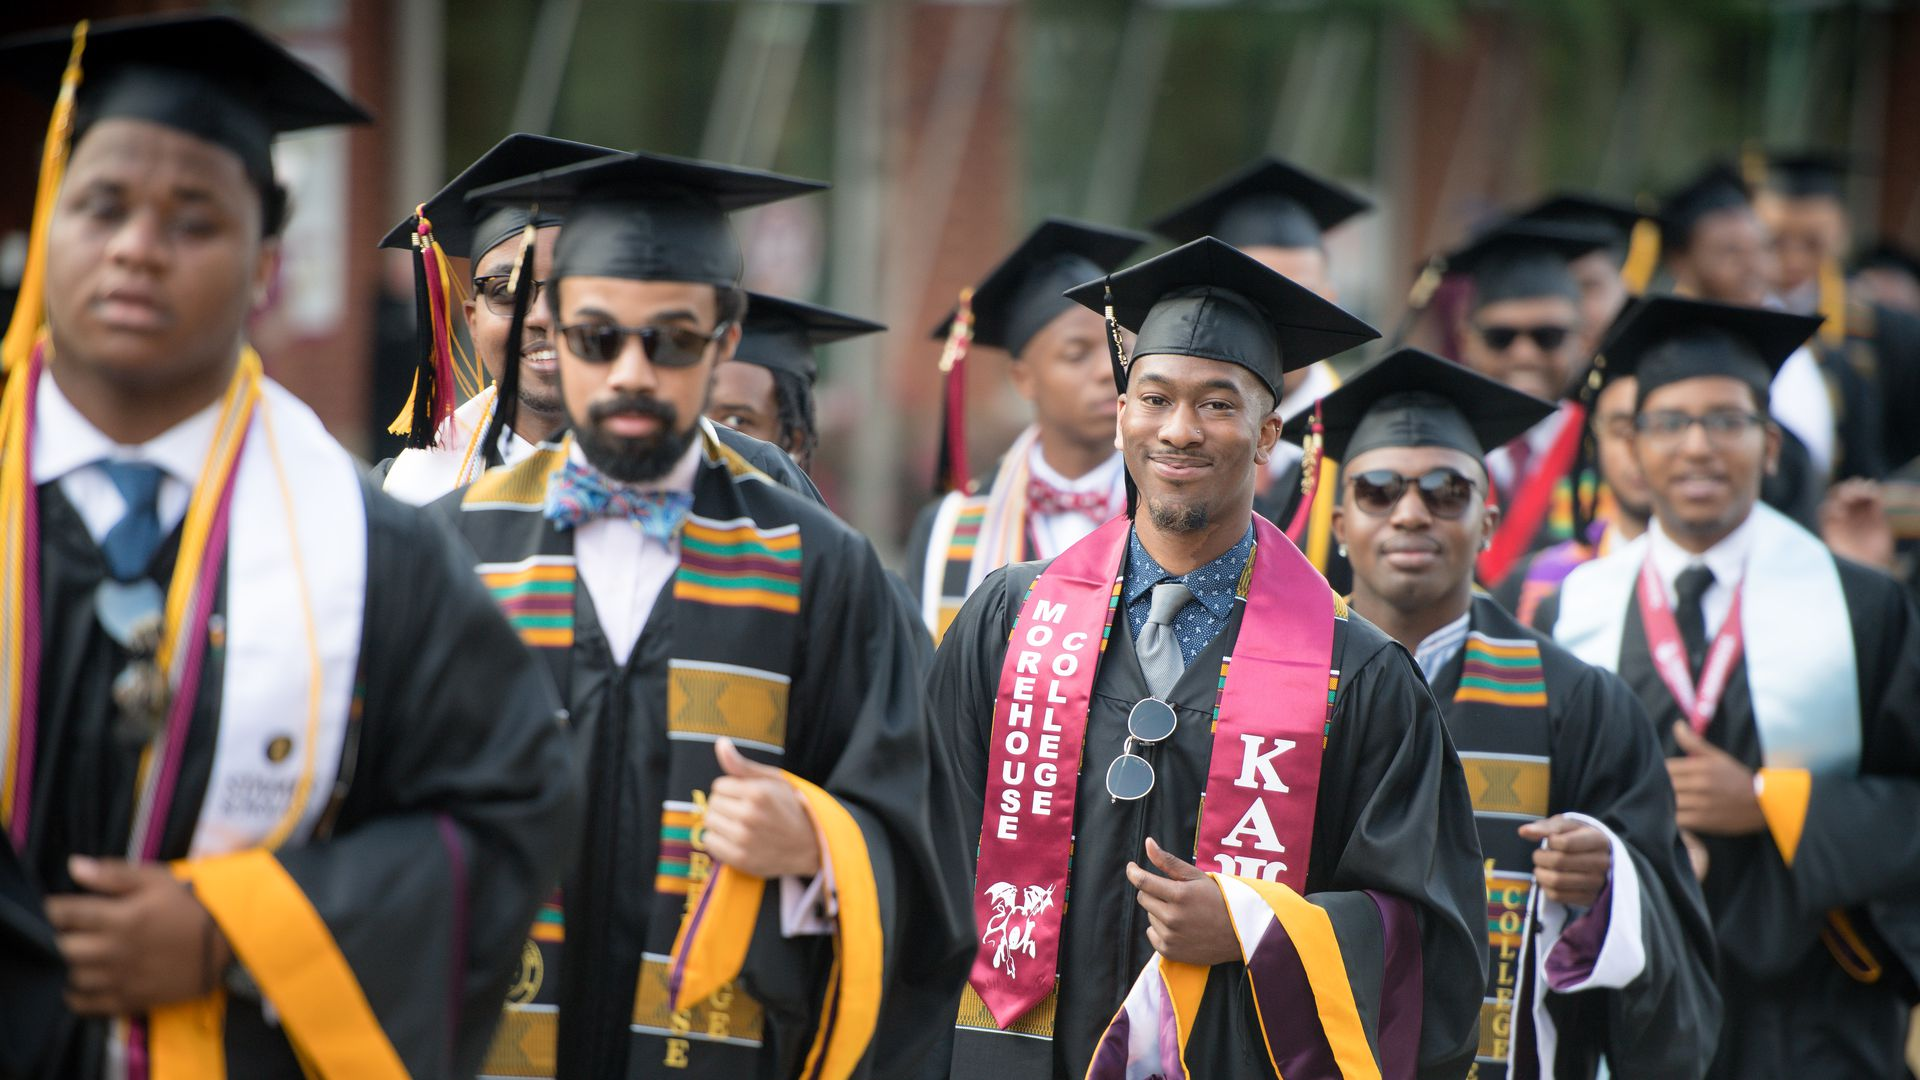 Morehouse College students at 2019 commencement.